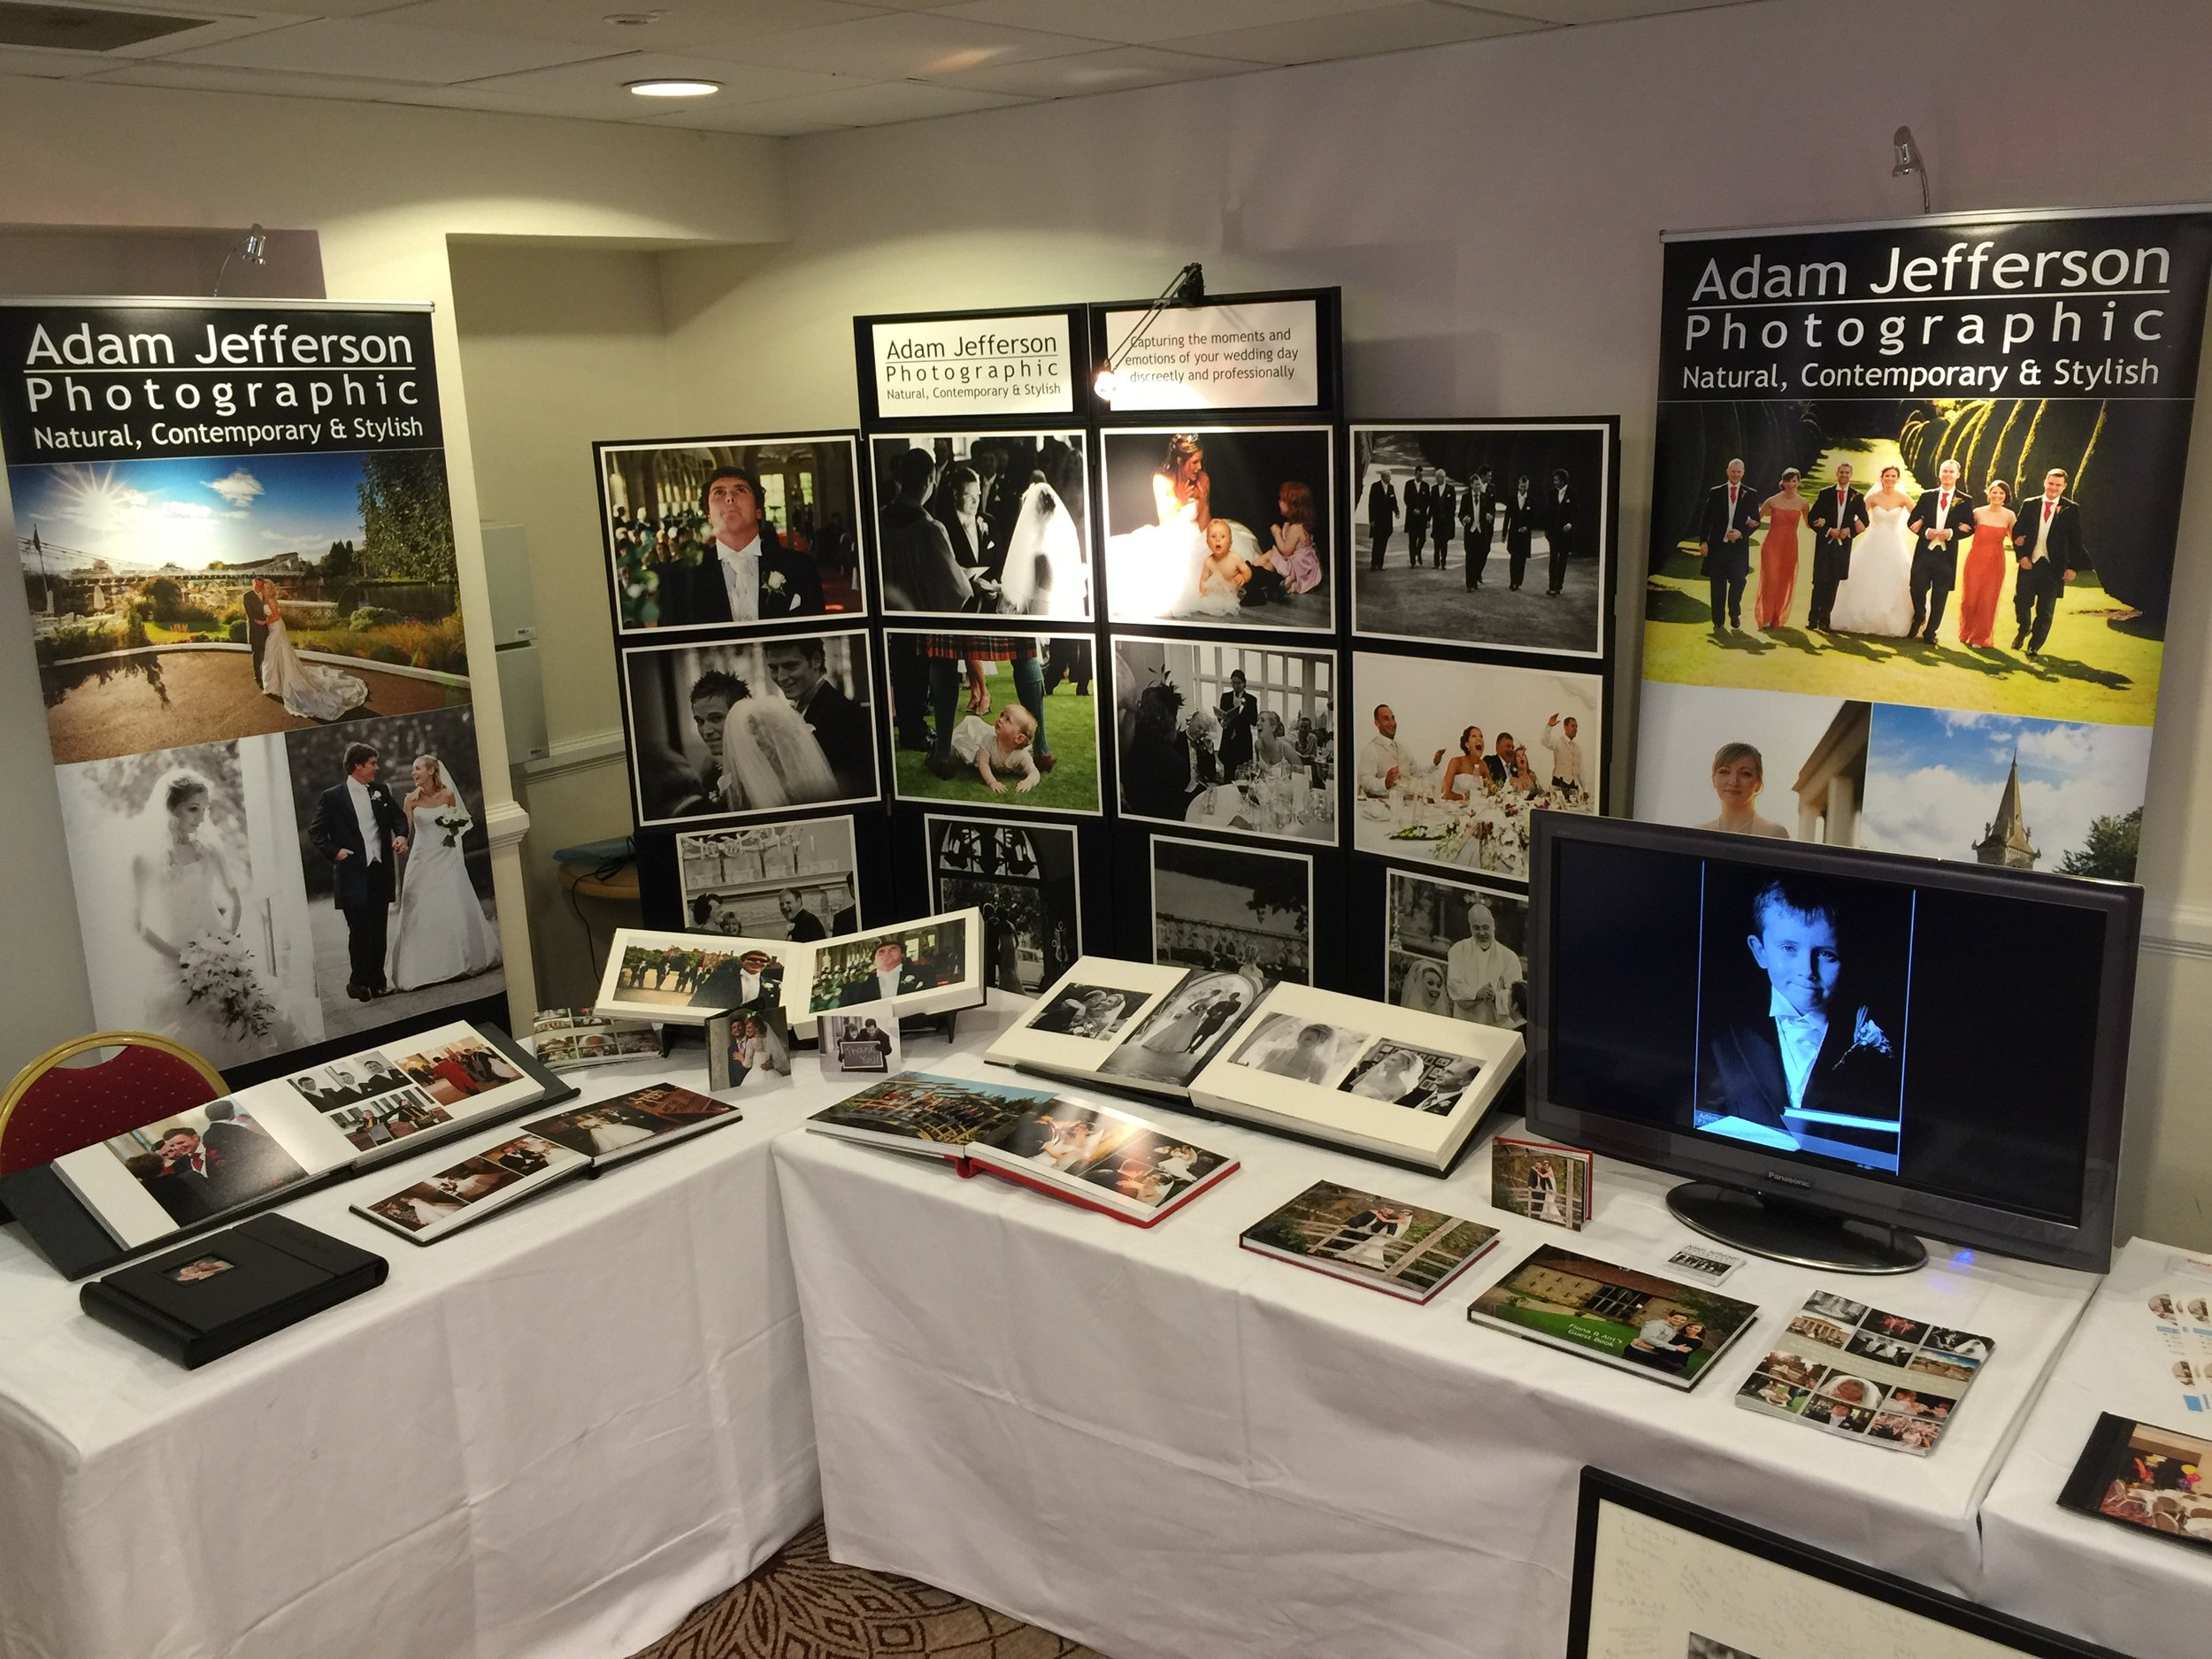 Our display at the wedding fair today